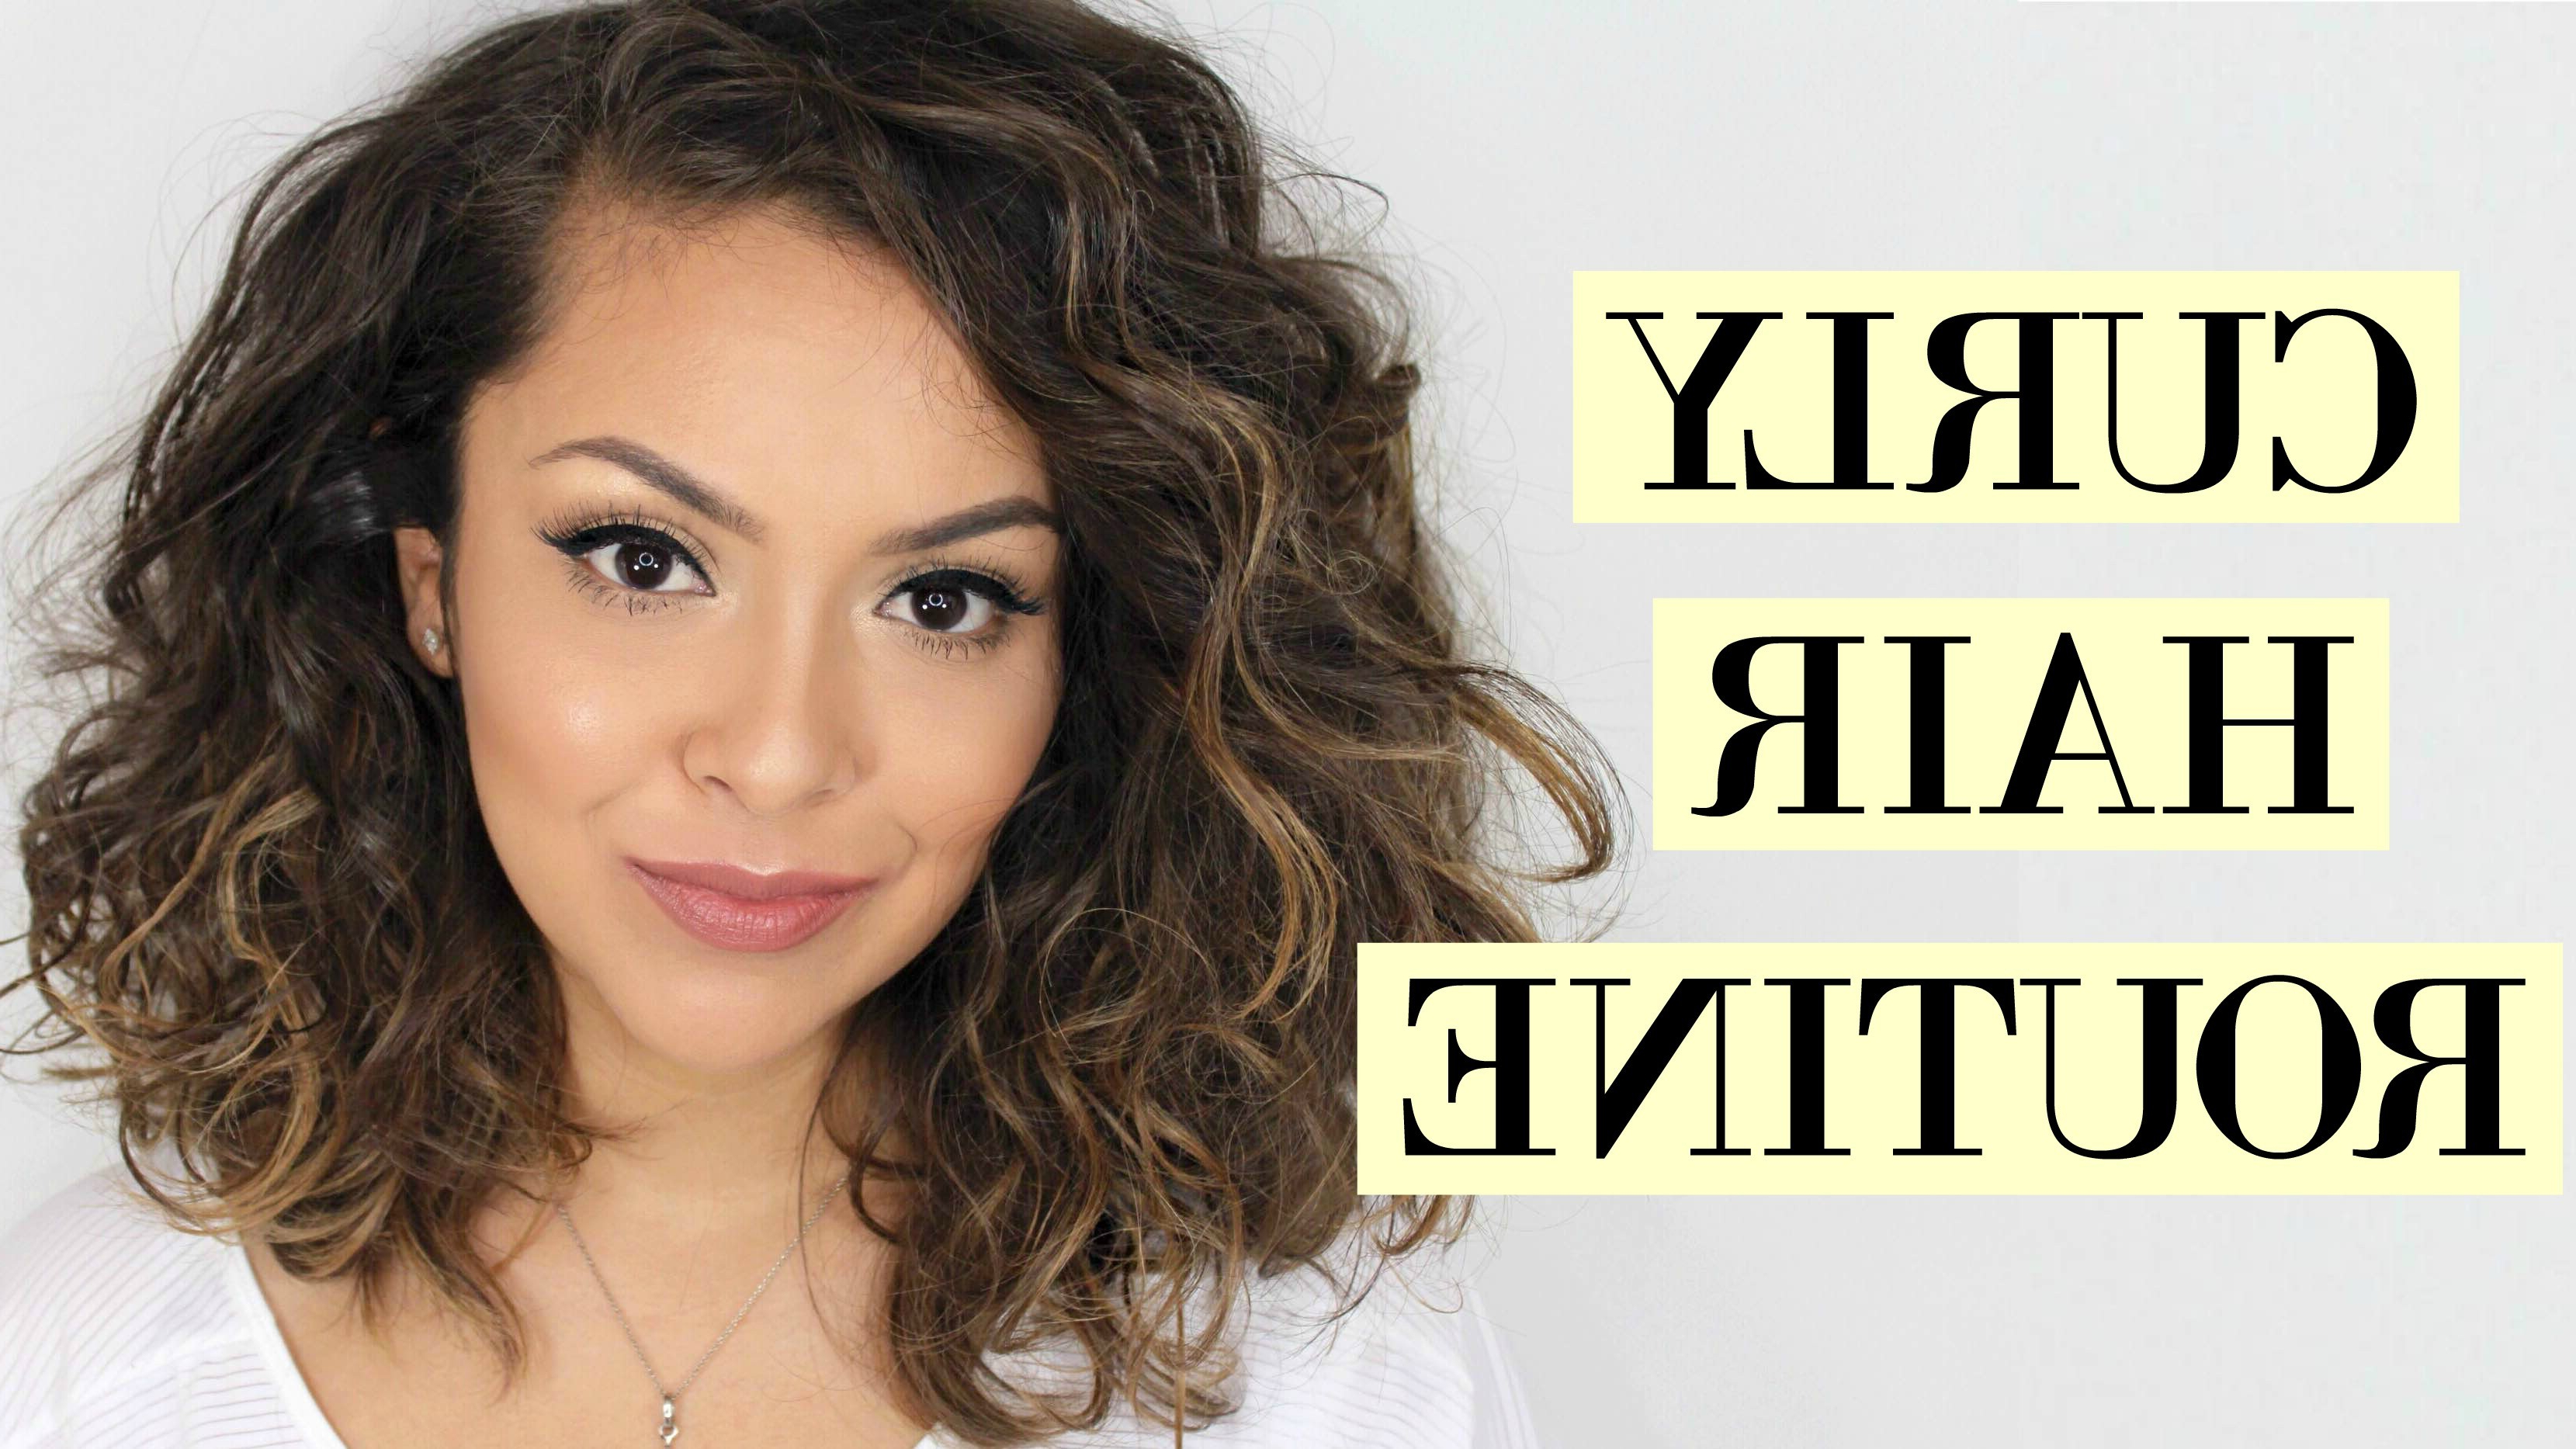 Blow Dry Short Curly Hair Unique Curly Hair Routine For Short Hair Regarding Blow Dry Short Curly Hair (View 13 of 25)